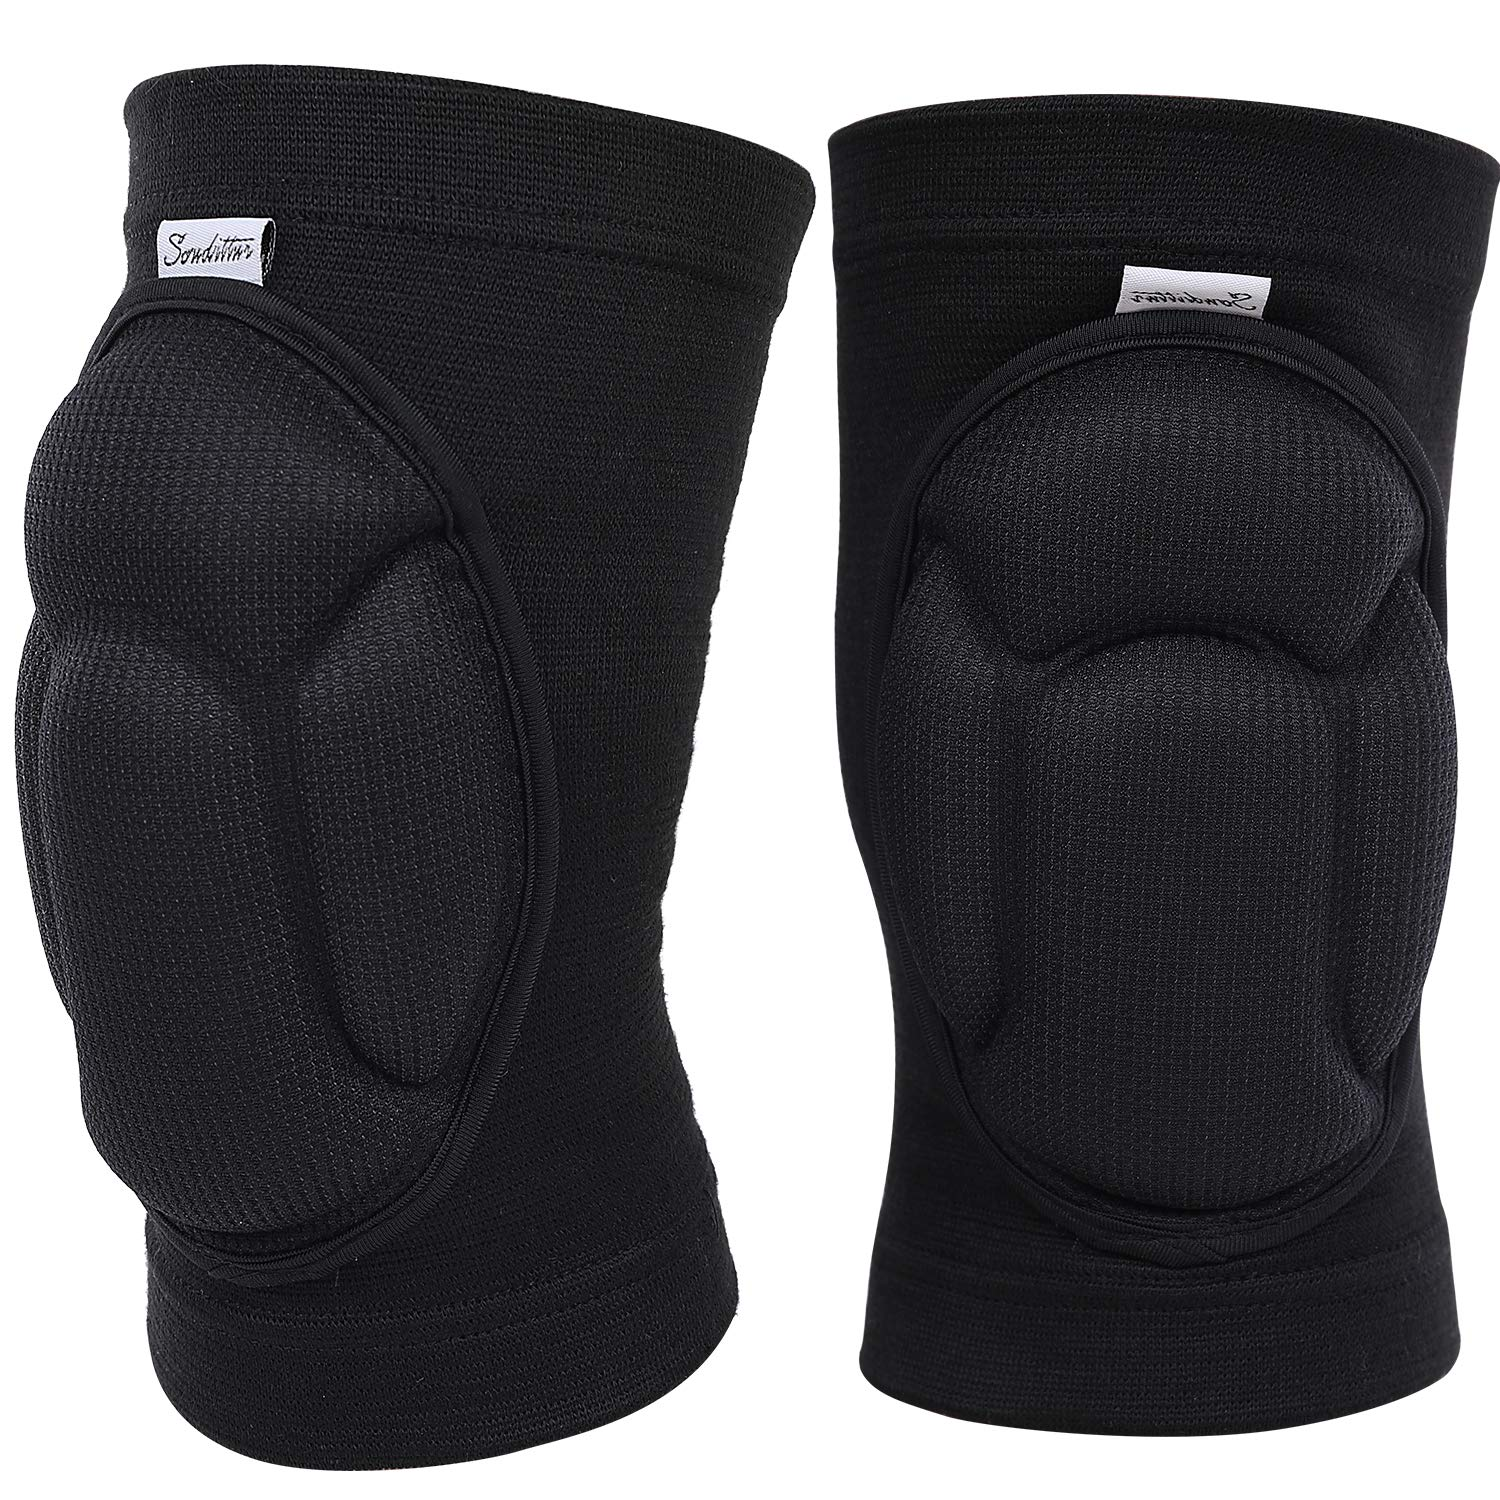 Soudittur Protective Knee Pads Adult Anti-Slip Knee Guards Thick Sponge Collision Avoidance Warm Knee Sleeve for Volleyball Football Yoga Dance Work Gardening Knee Pads for Men Women 2PCS, Black